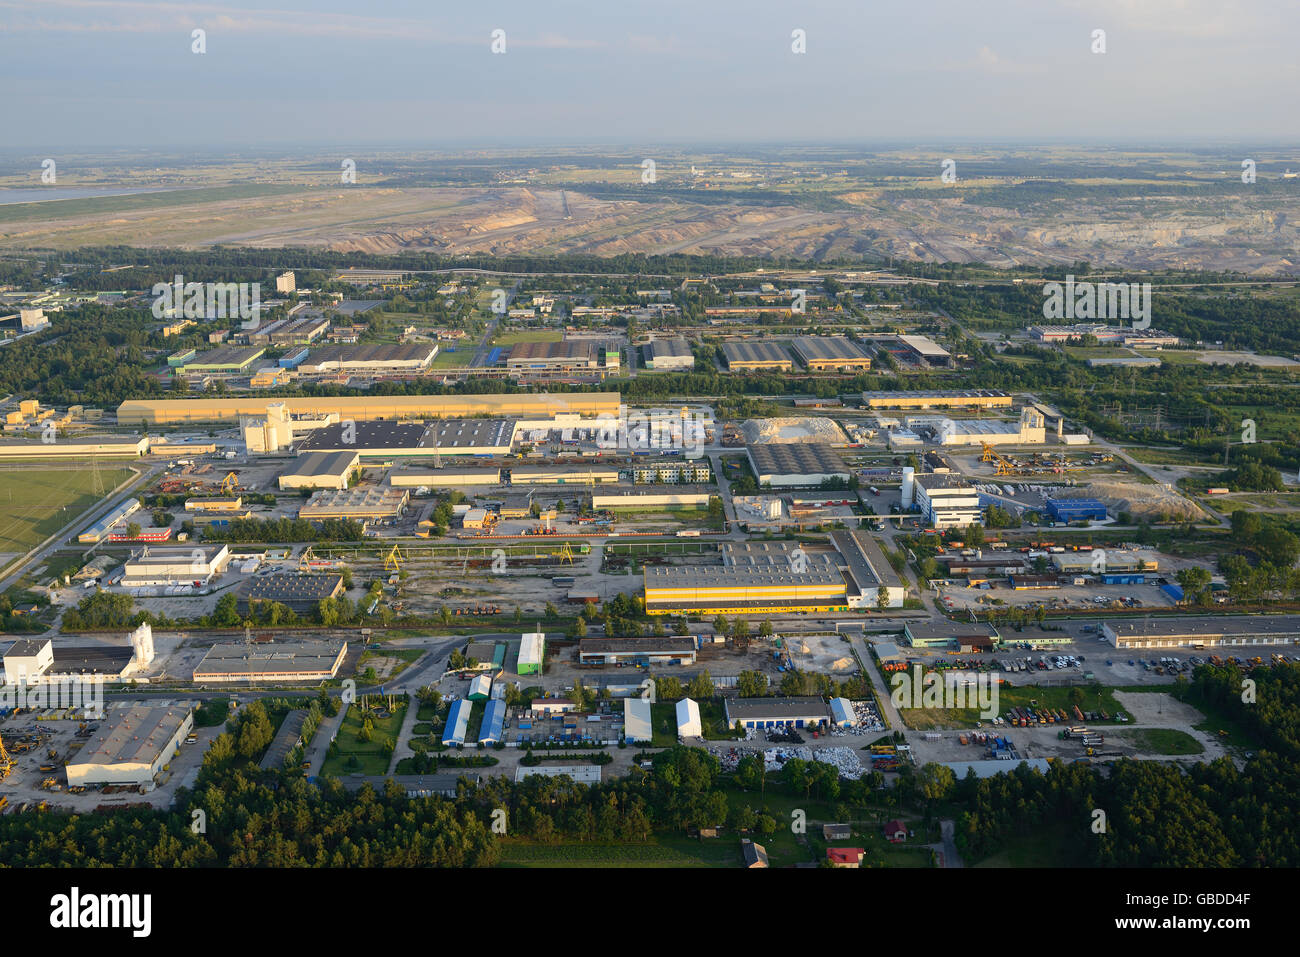 INFRASTRUCTURE AT THE BELCHATOW POWER STATION (aerial view). Lodz Voivodeship, Poland. Stock Photo